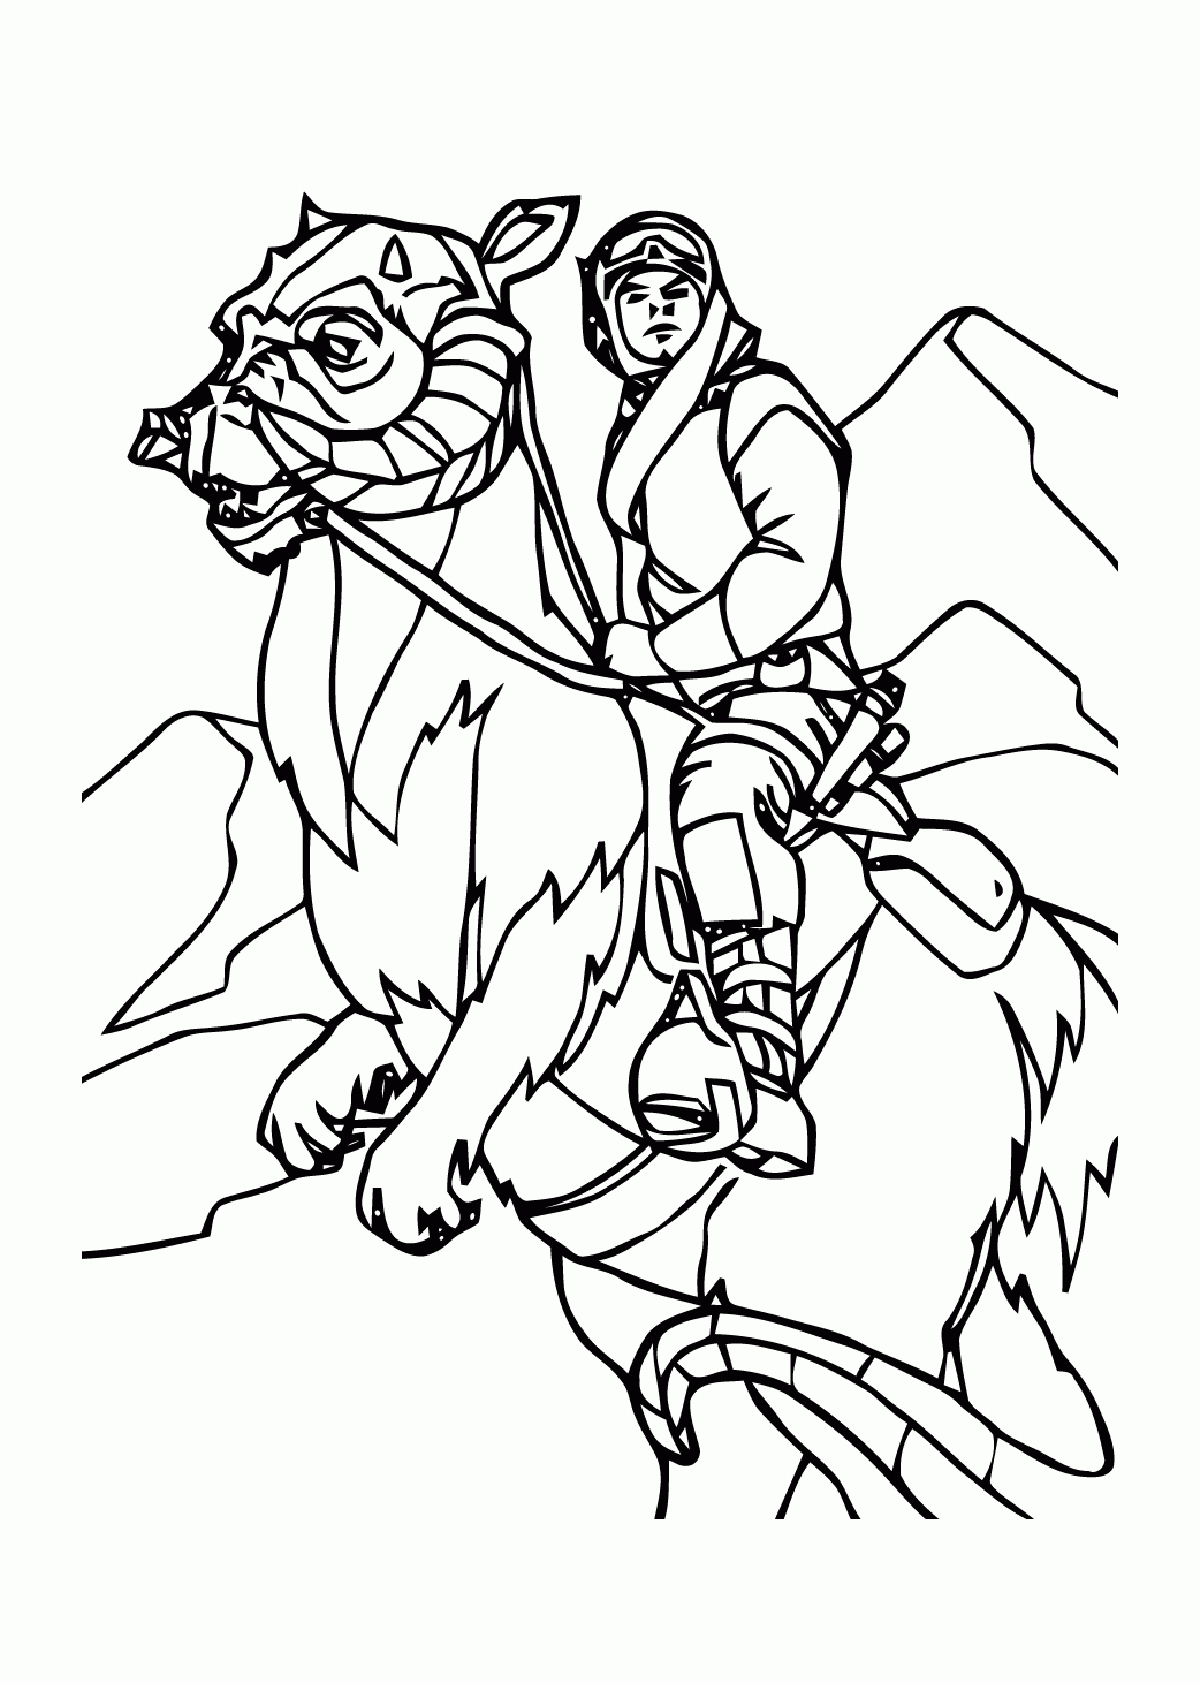 1200x1683 Luke Skywalker Coloring Page Luxury Star Wars Luke Skywalker